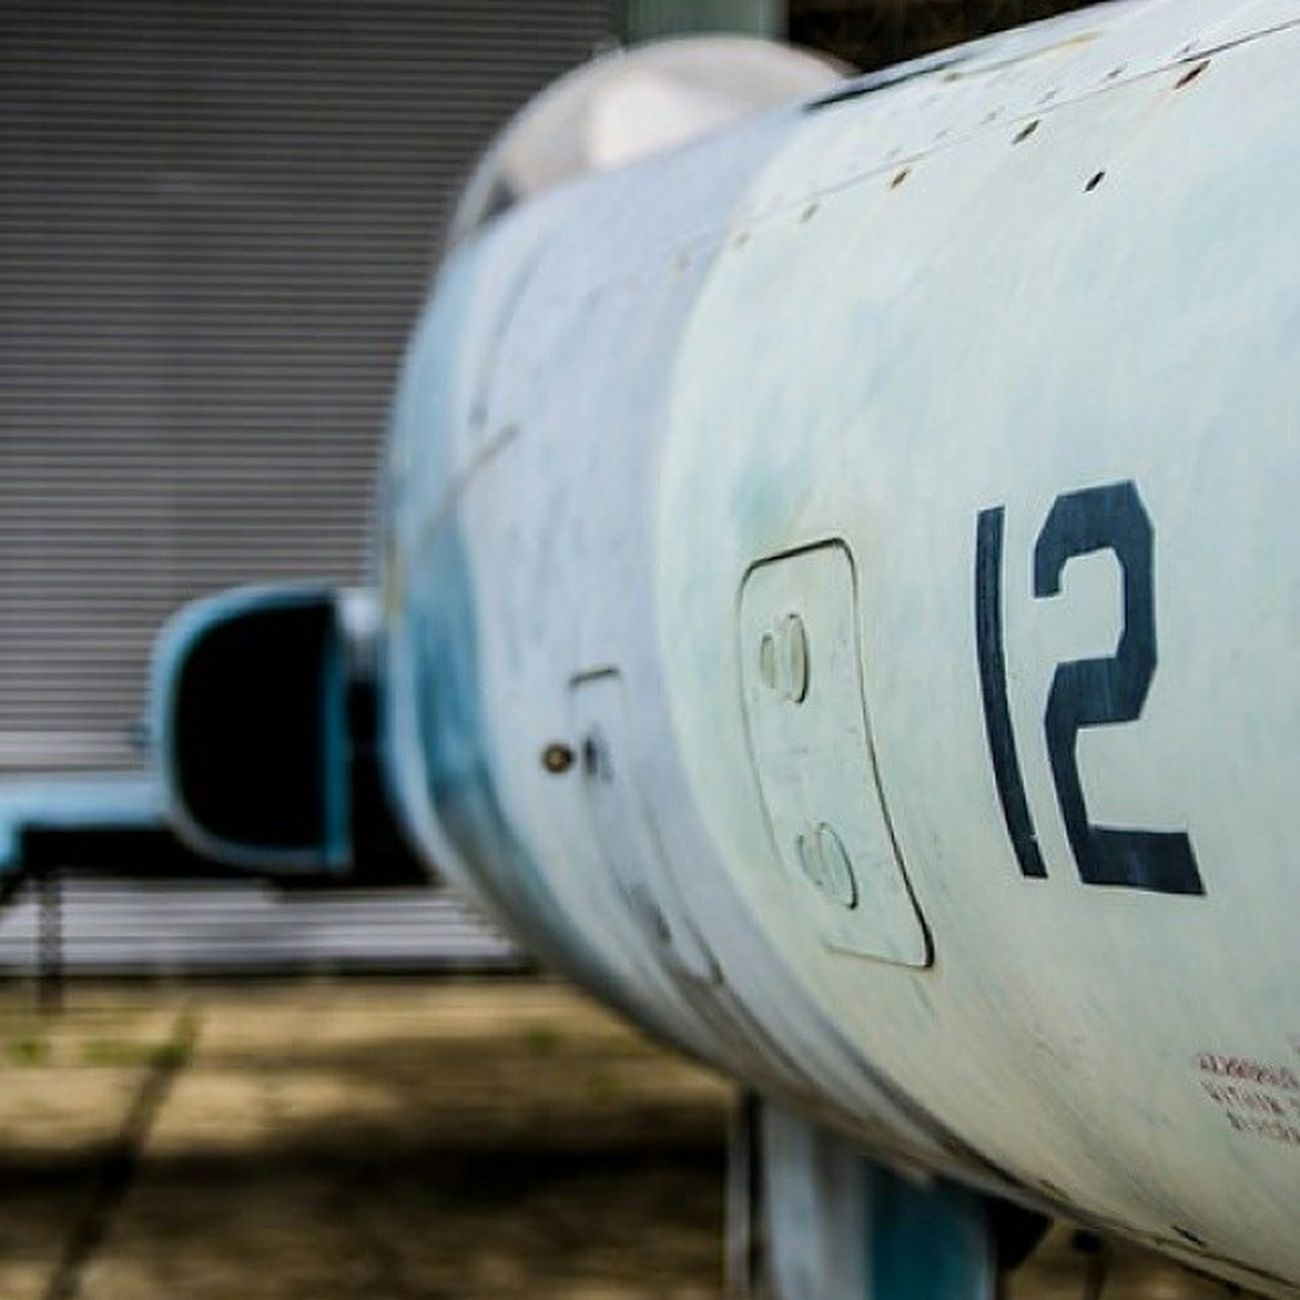 Planes Airforce Aircraft Tudm Malaysia Museum Old Rusty Outdoor Bokeh